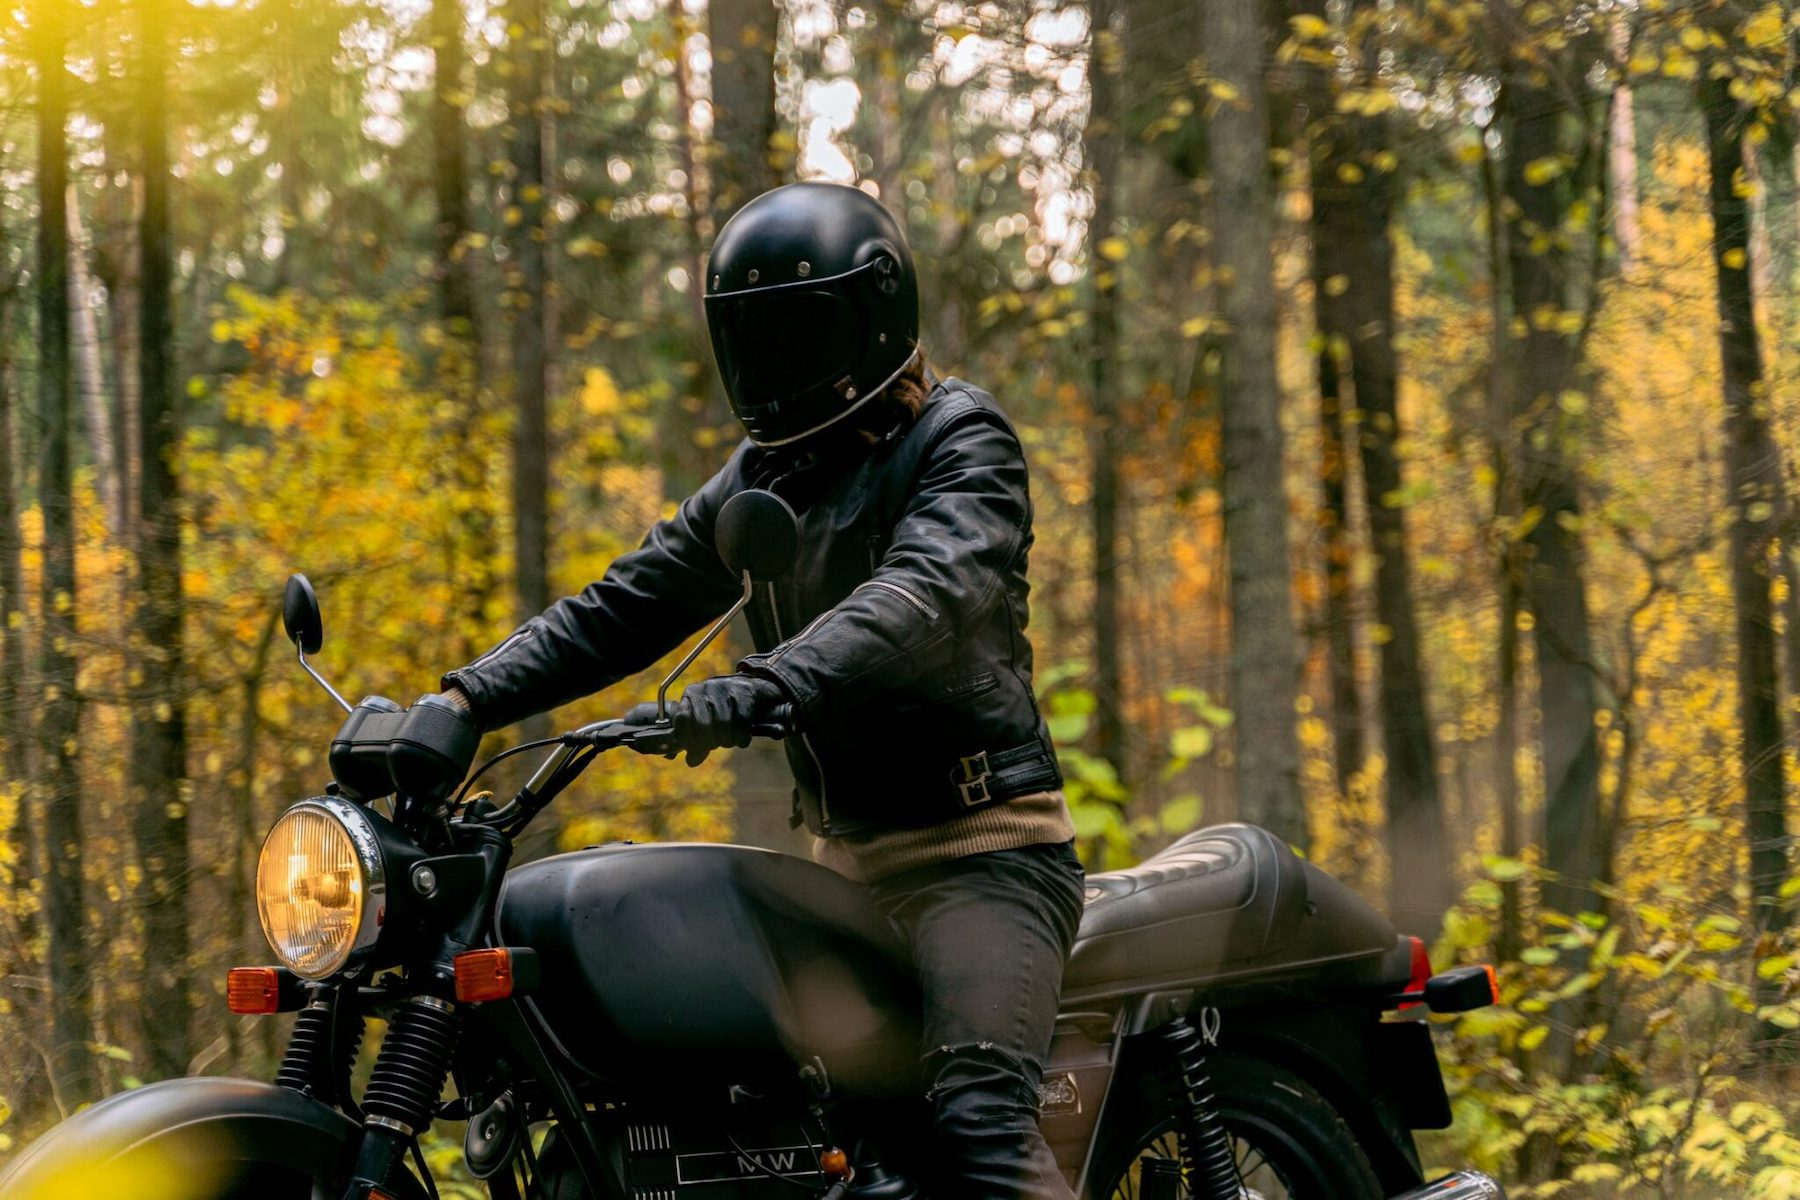 a motorcycle rider dressed in all-black look at the camera in a European forest